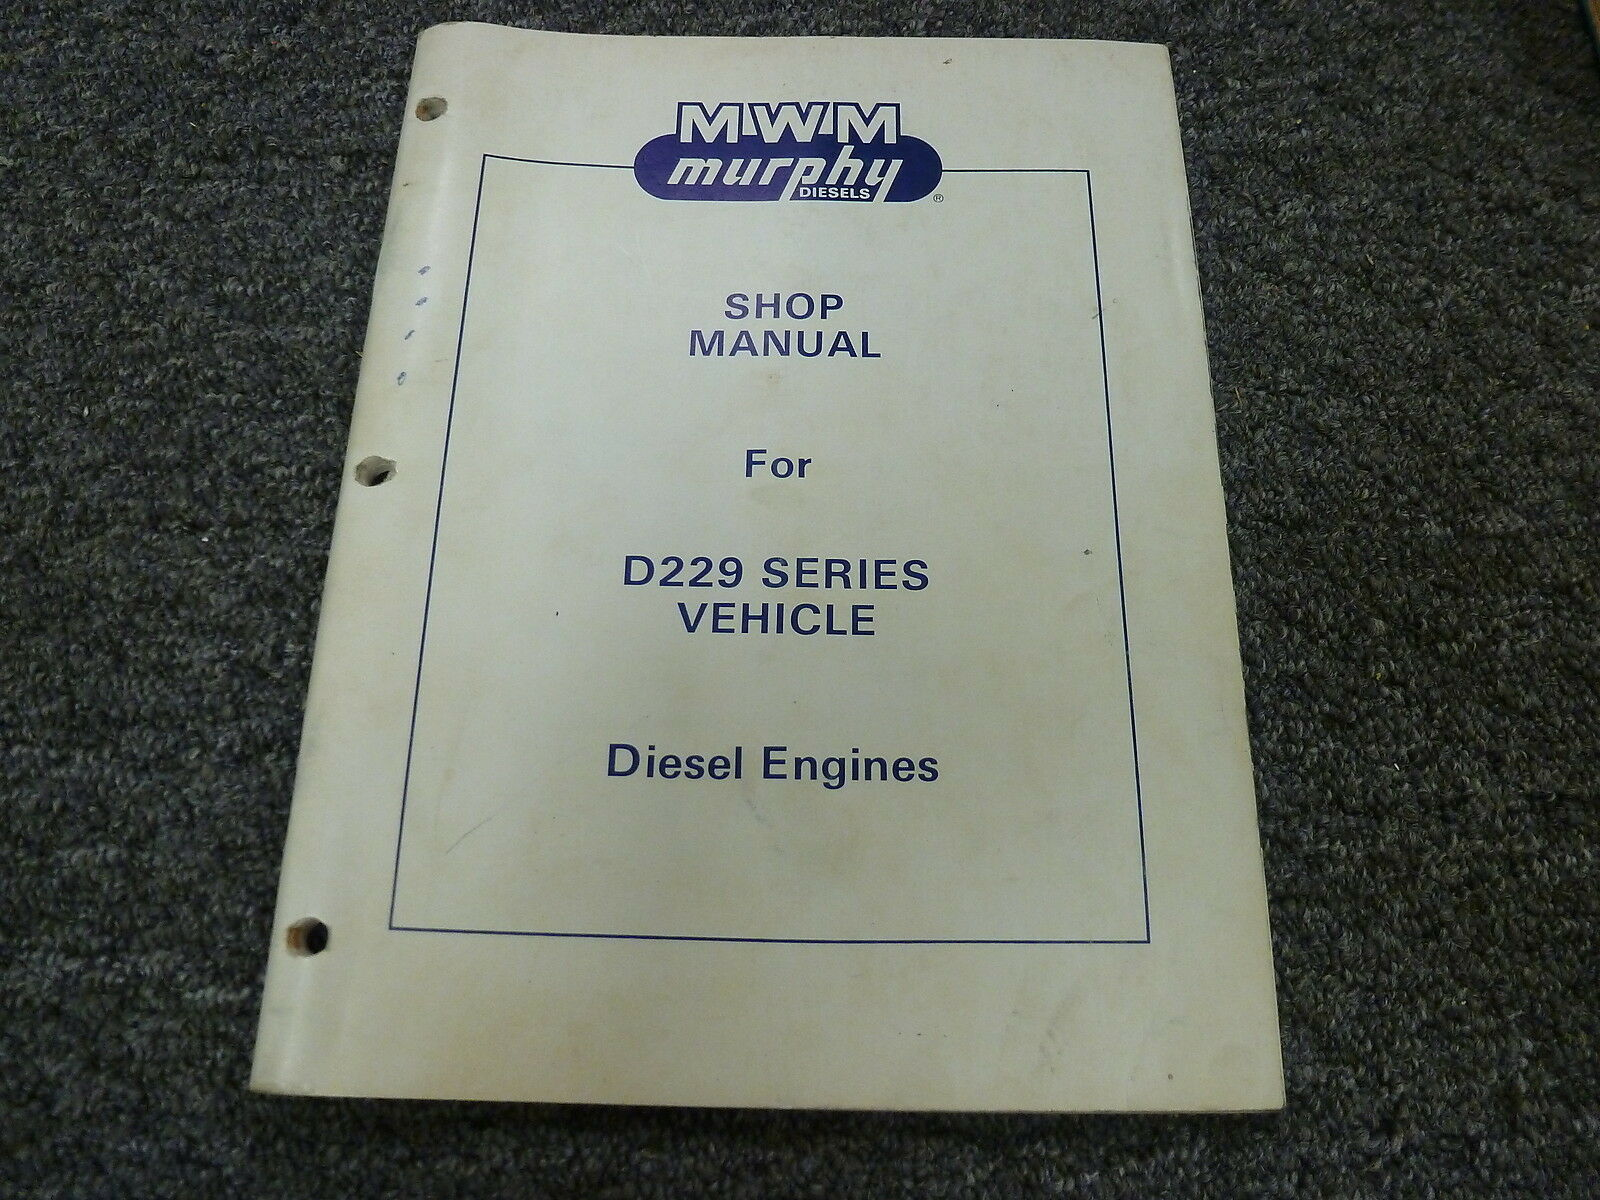 MWM Murphy Diesel D229-4 D229-6 Engine Shop Service Repair Manual Book 1 of  1Only 1 available See More